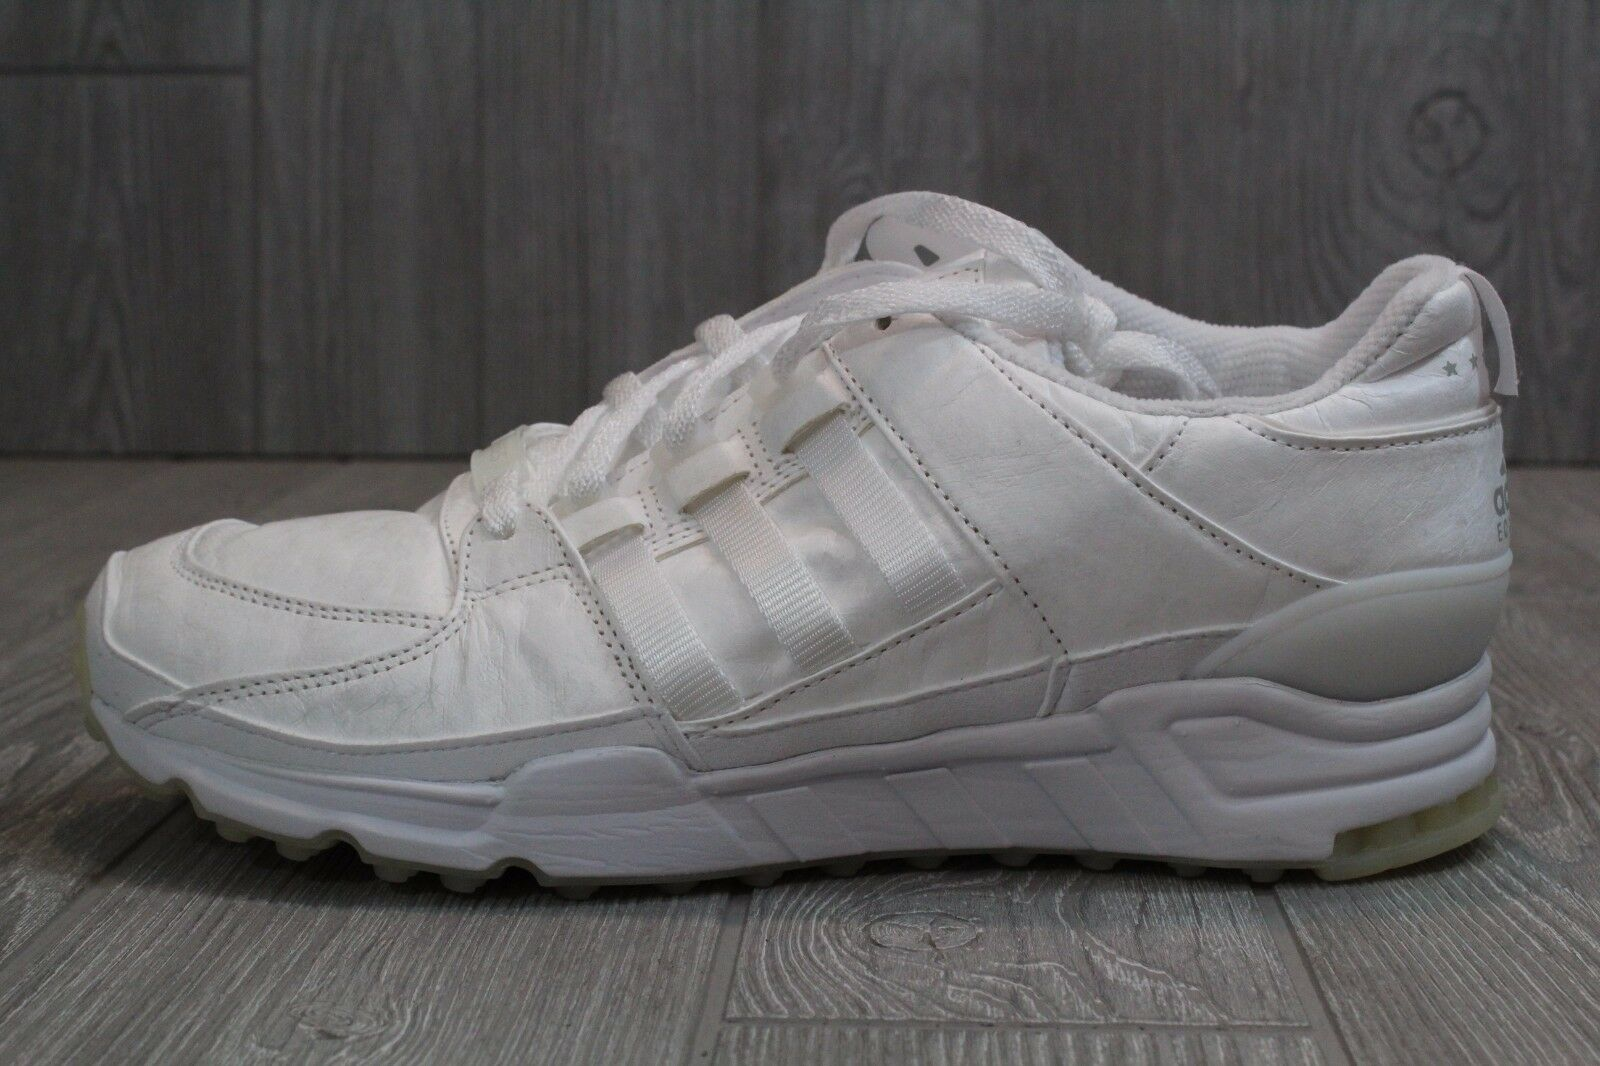 ac57d4c120c 22 New Adidas EQT Running Support White Crumpled Paper 9-12.5 9-12.5 9-12.5  Mens Shoes B27575 d64996